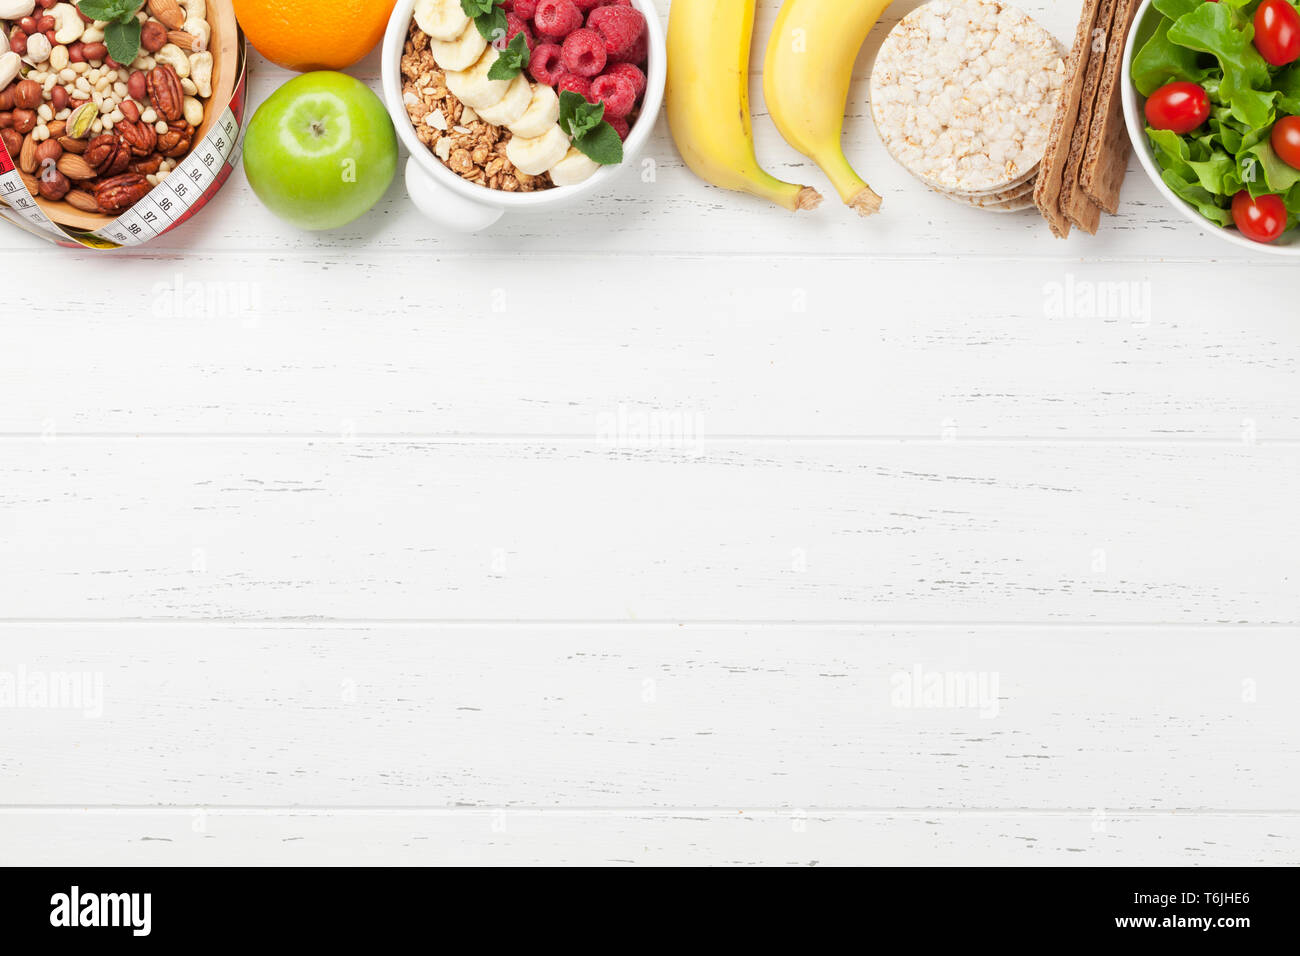 Healthy food and fitness concept. Salad, fruits, vegetables, nuts and breakfast cereal. Top view flat lay with copy space for your text - Stock Image